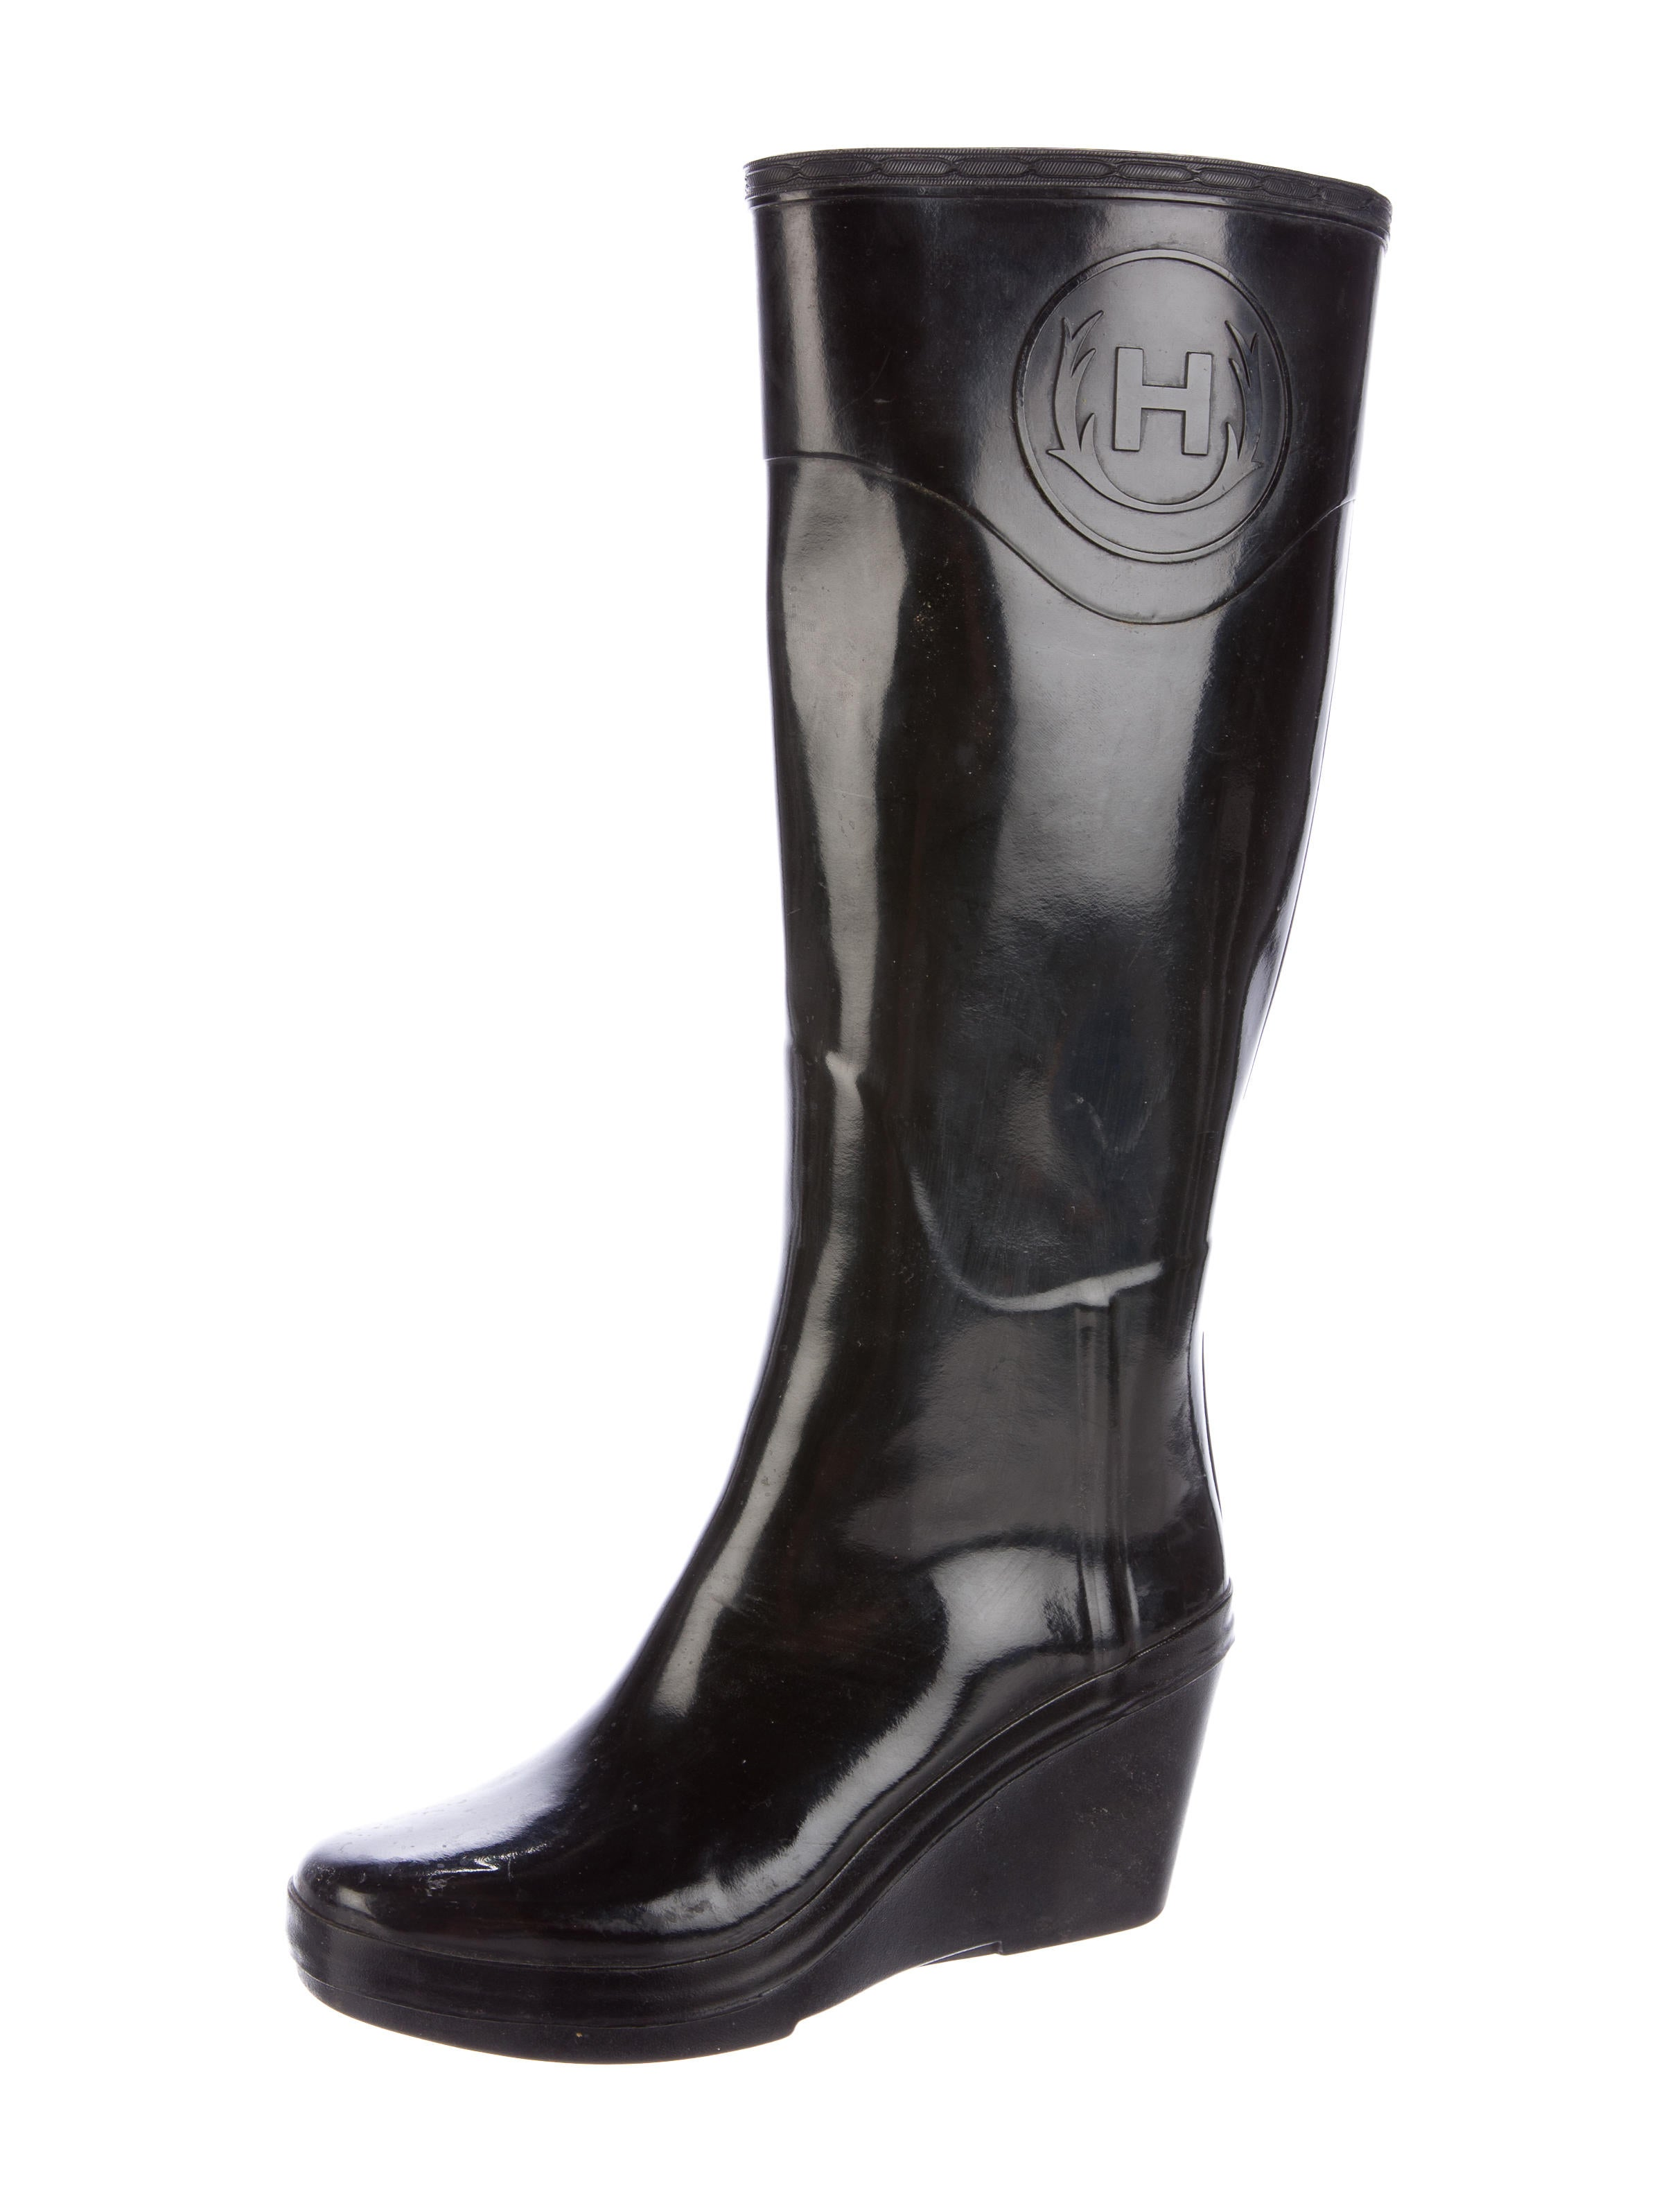 rubber wedge boots shoes wh821509 the